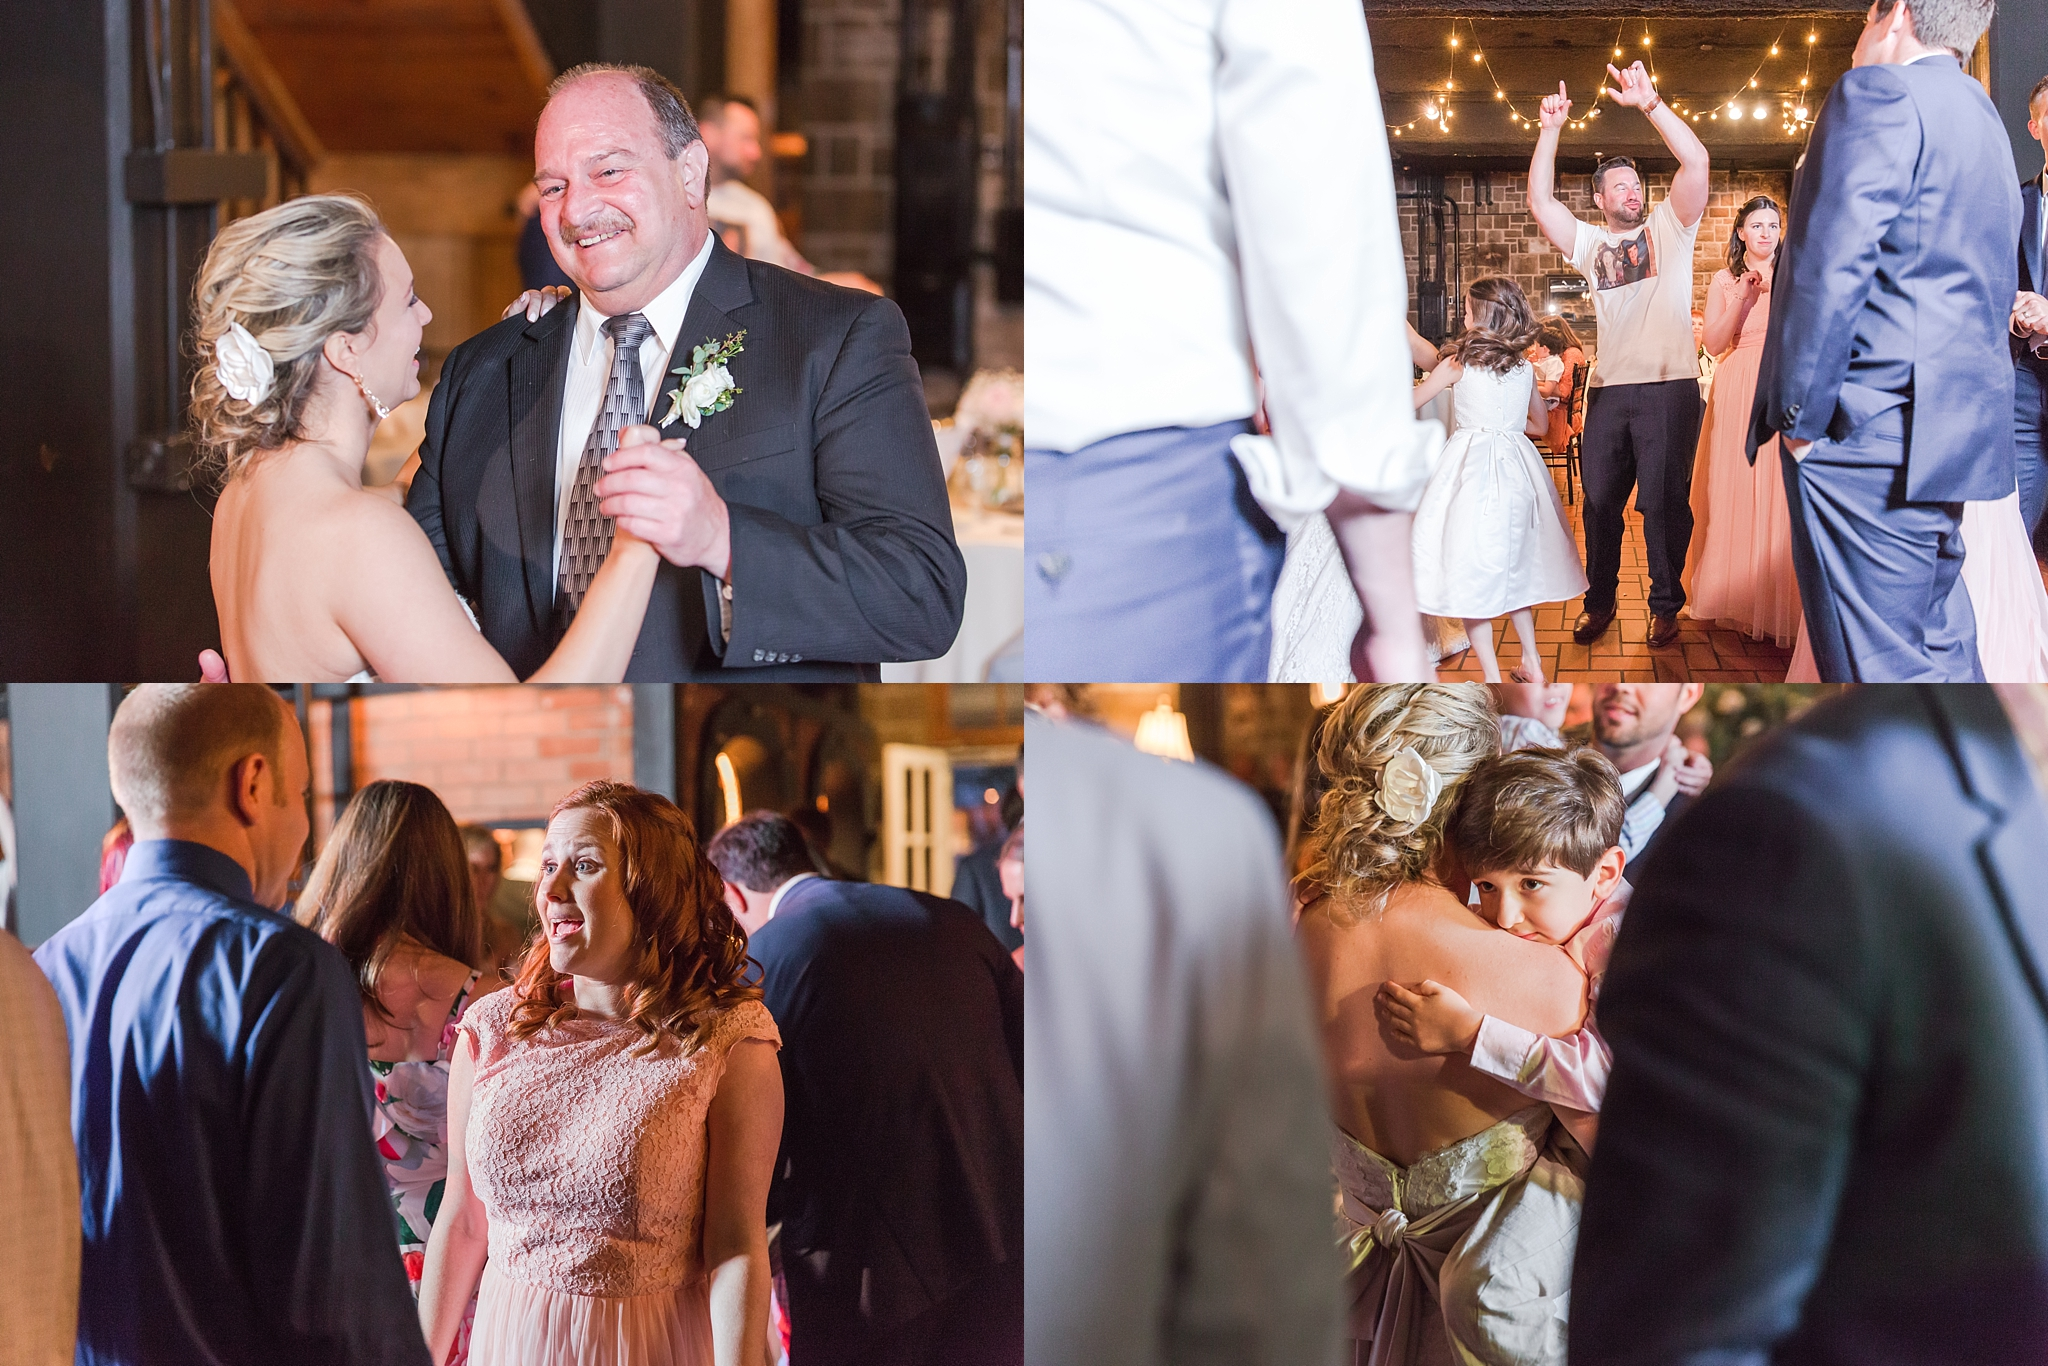 fun-candid-laid-back-wedding-photos-at-wellers-carriage-house-in-saline-michigan-and-at-the-eagle-crest-golf-resort-by-courtney-carolyn-photography_0092.jpg